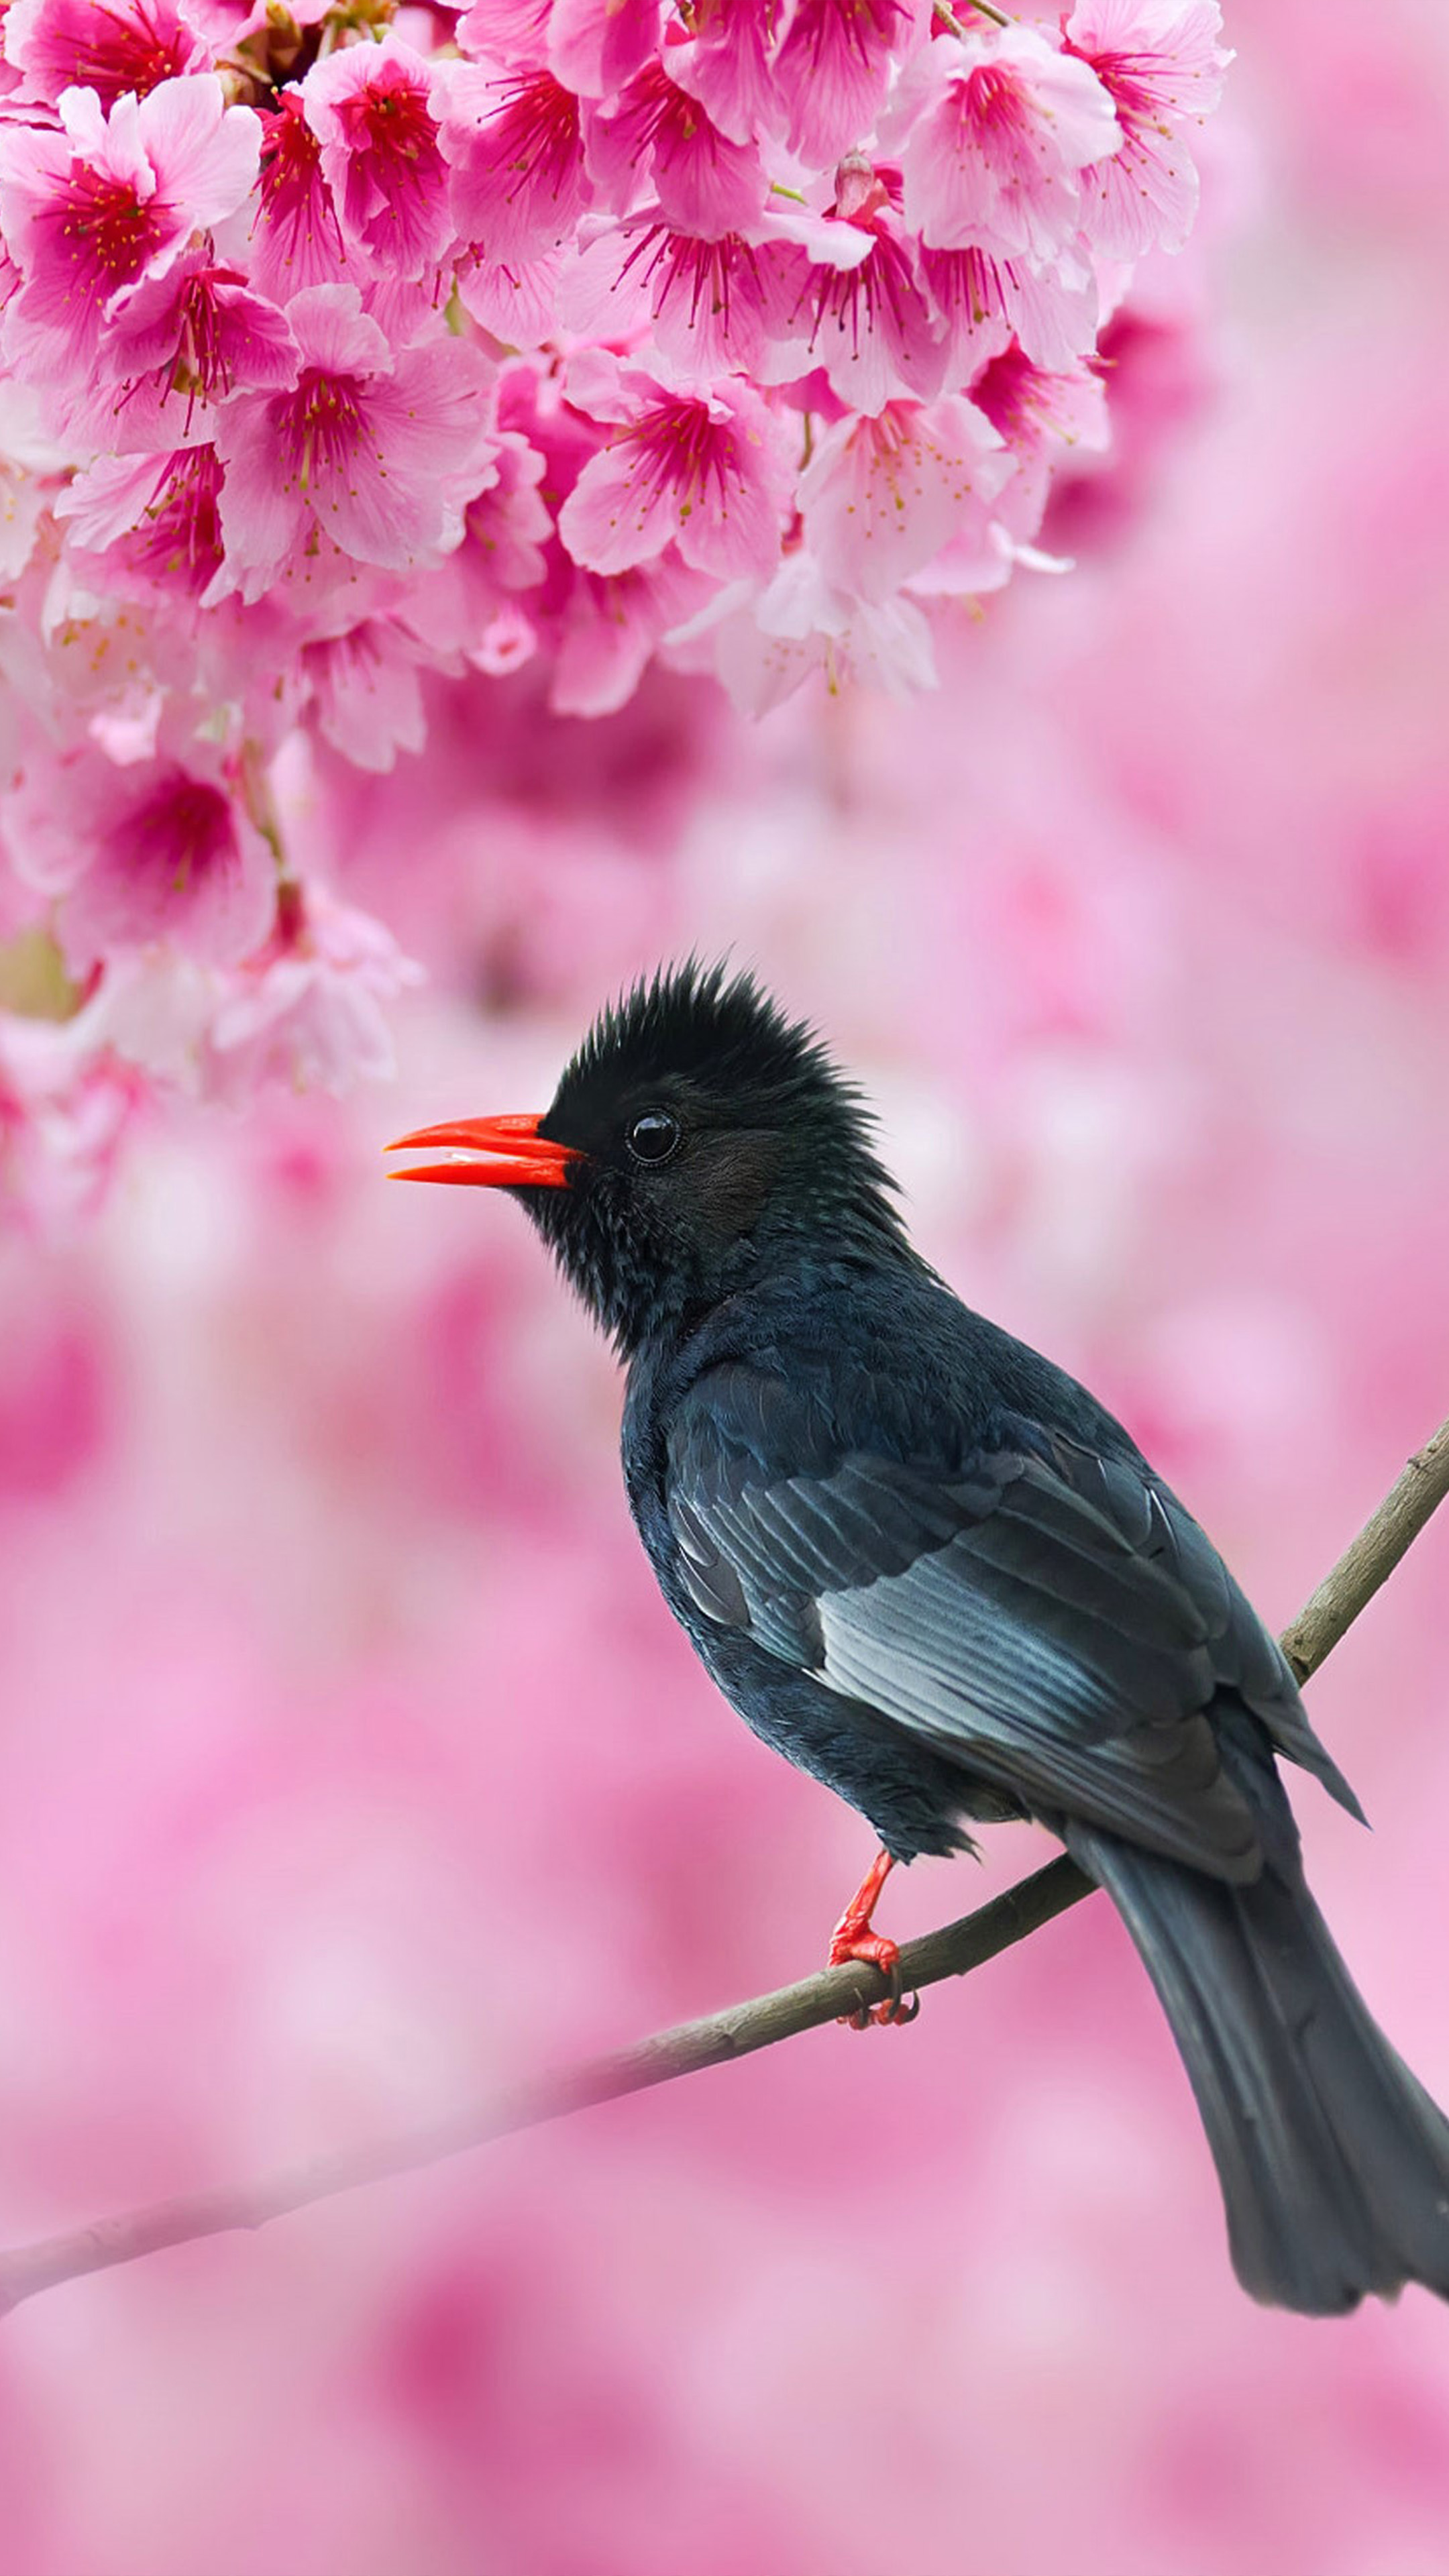 Wallpaper Brazil Girl Download Black Bulbul Sakura Tree Pink Flowers Free Pure